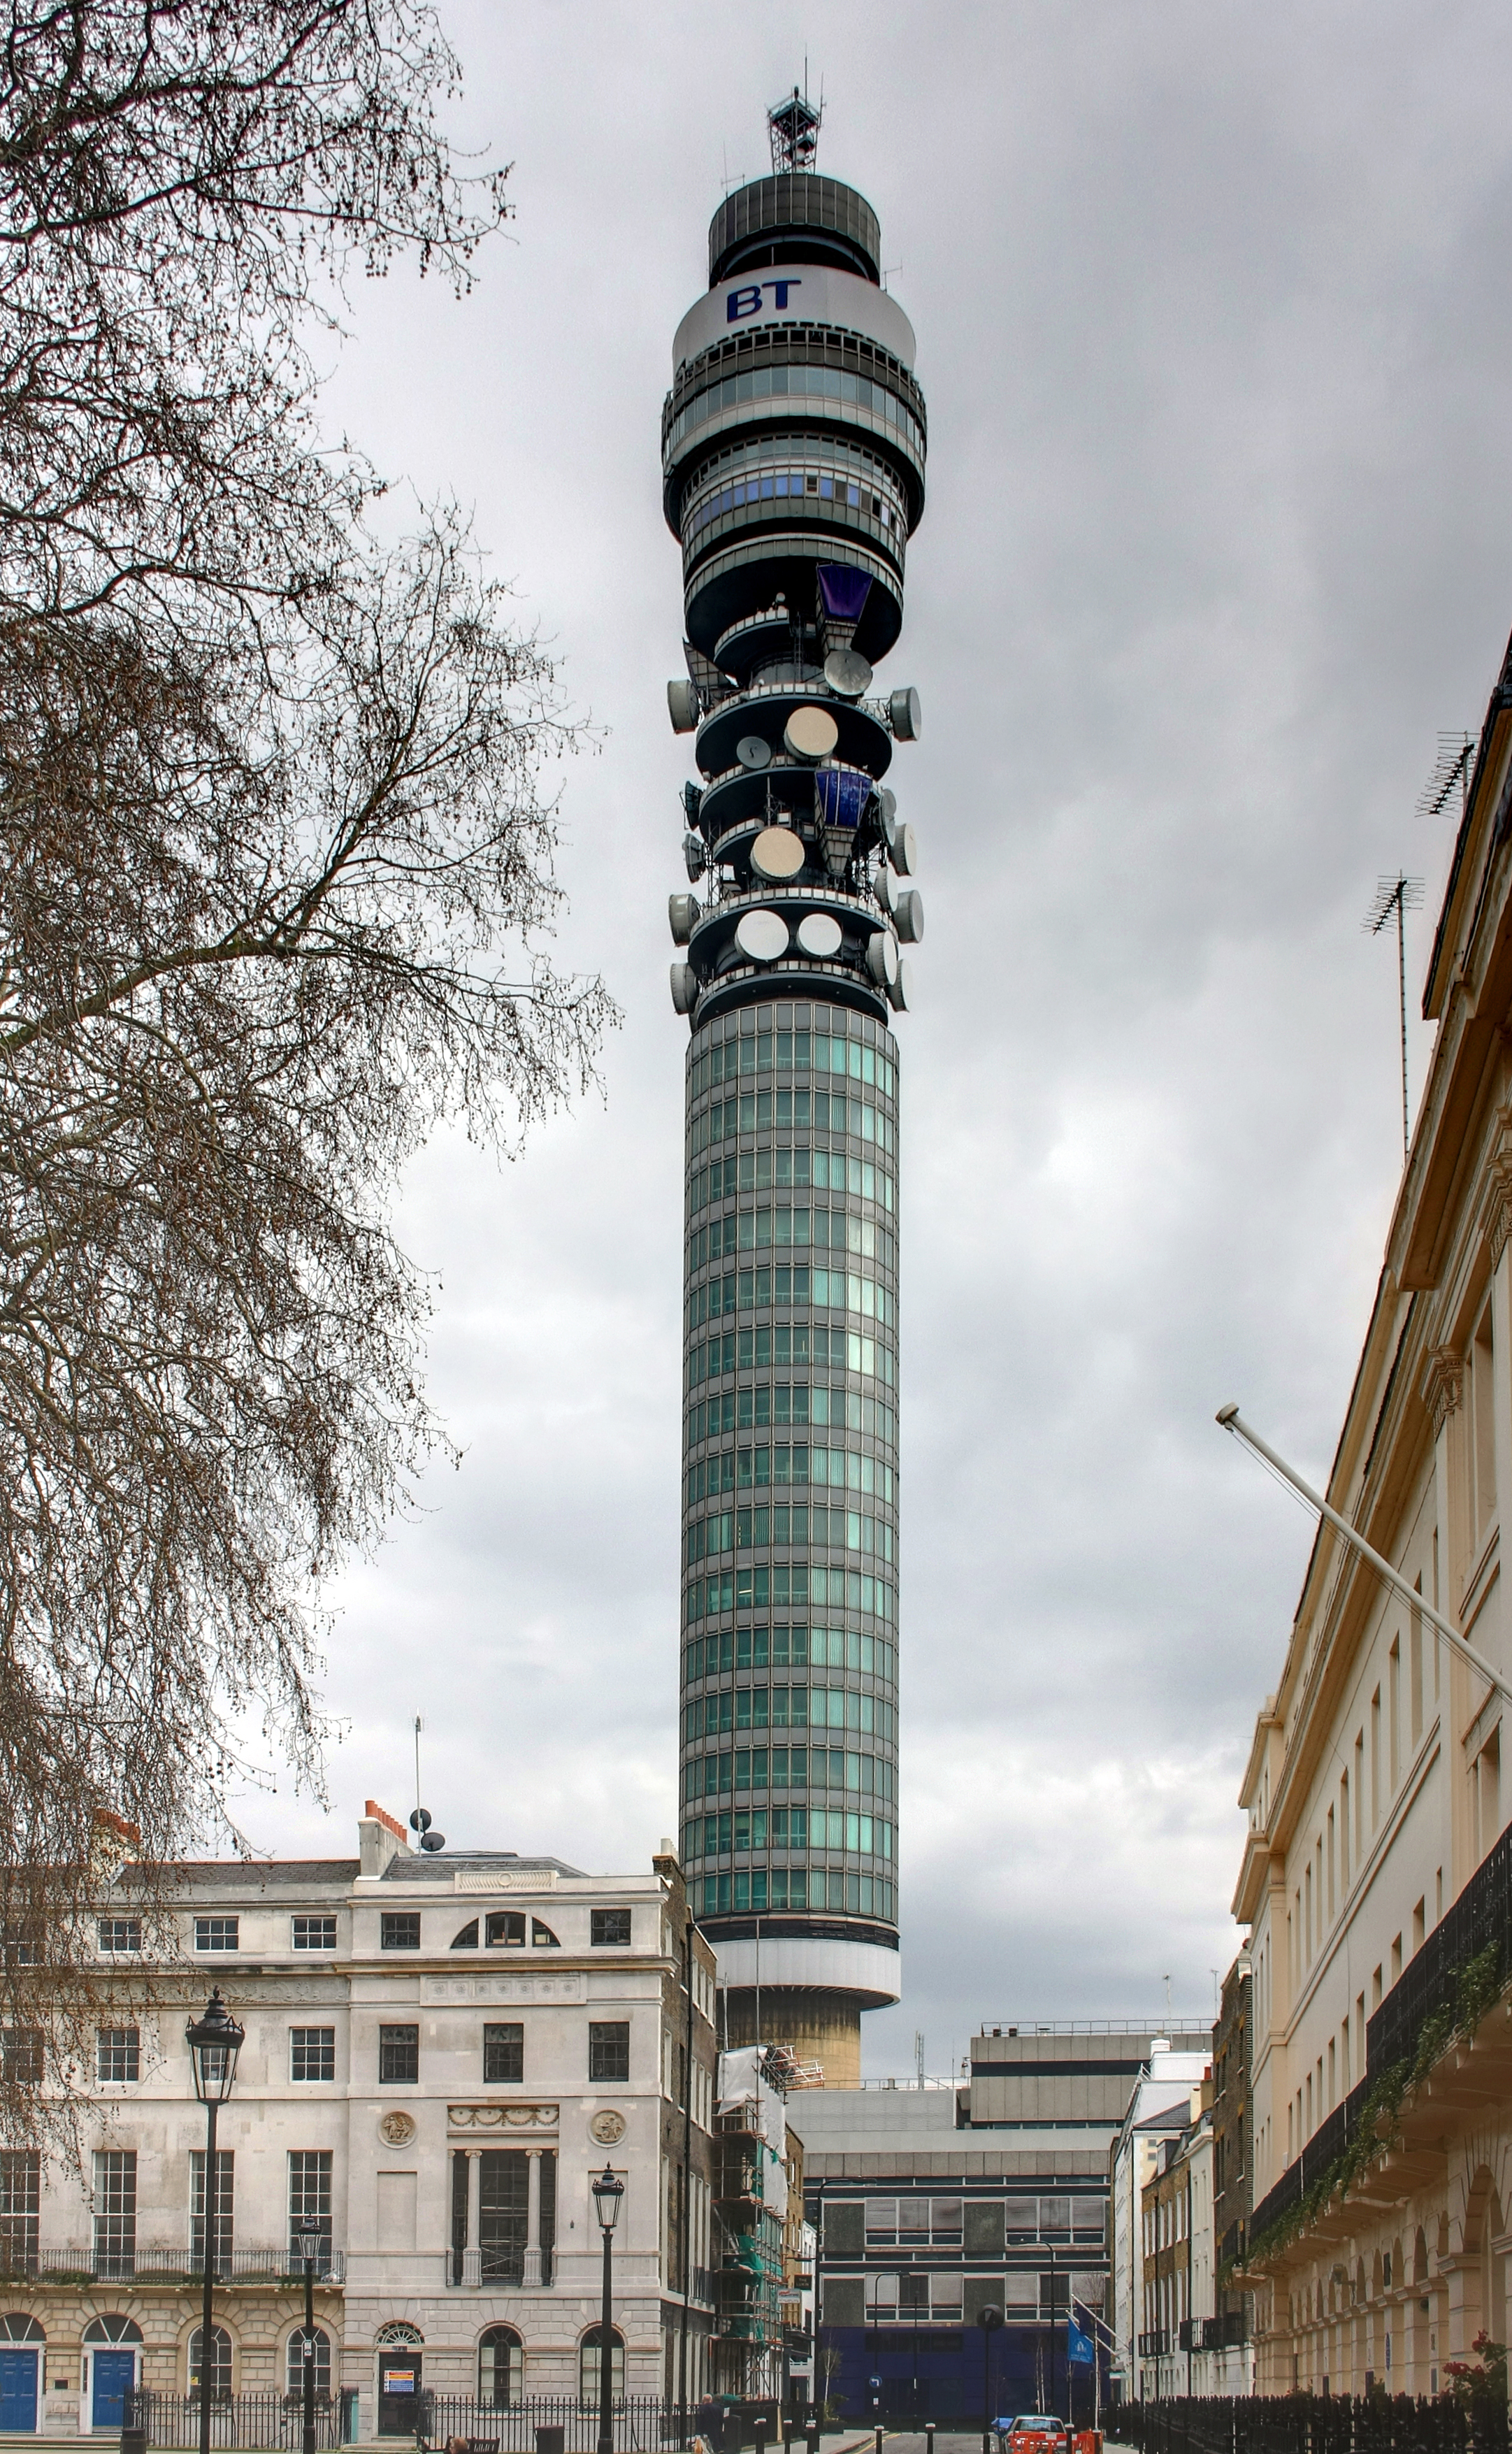 Bt tower disambiguation for Building londre